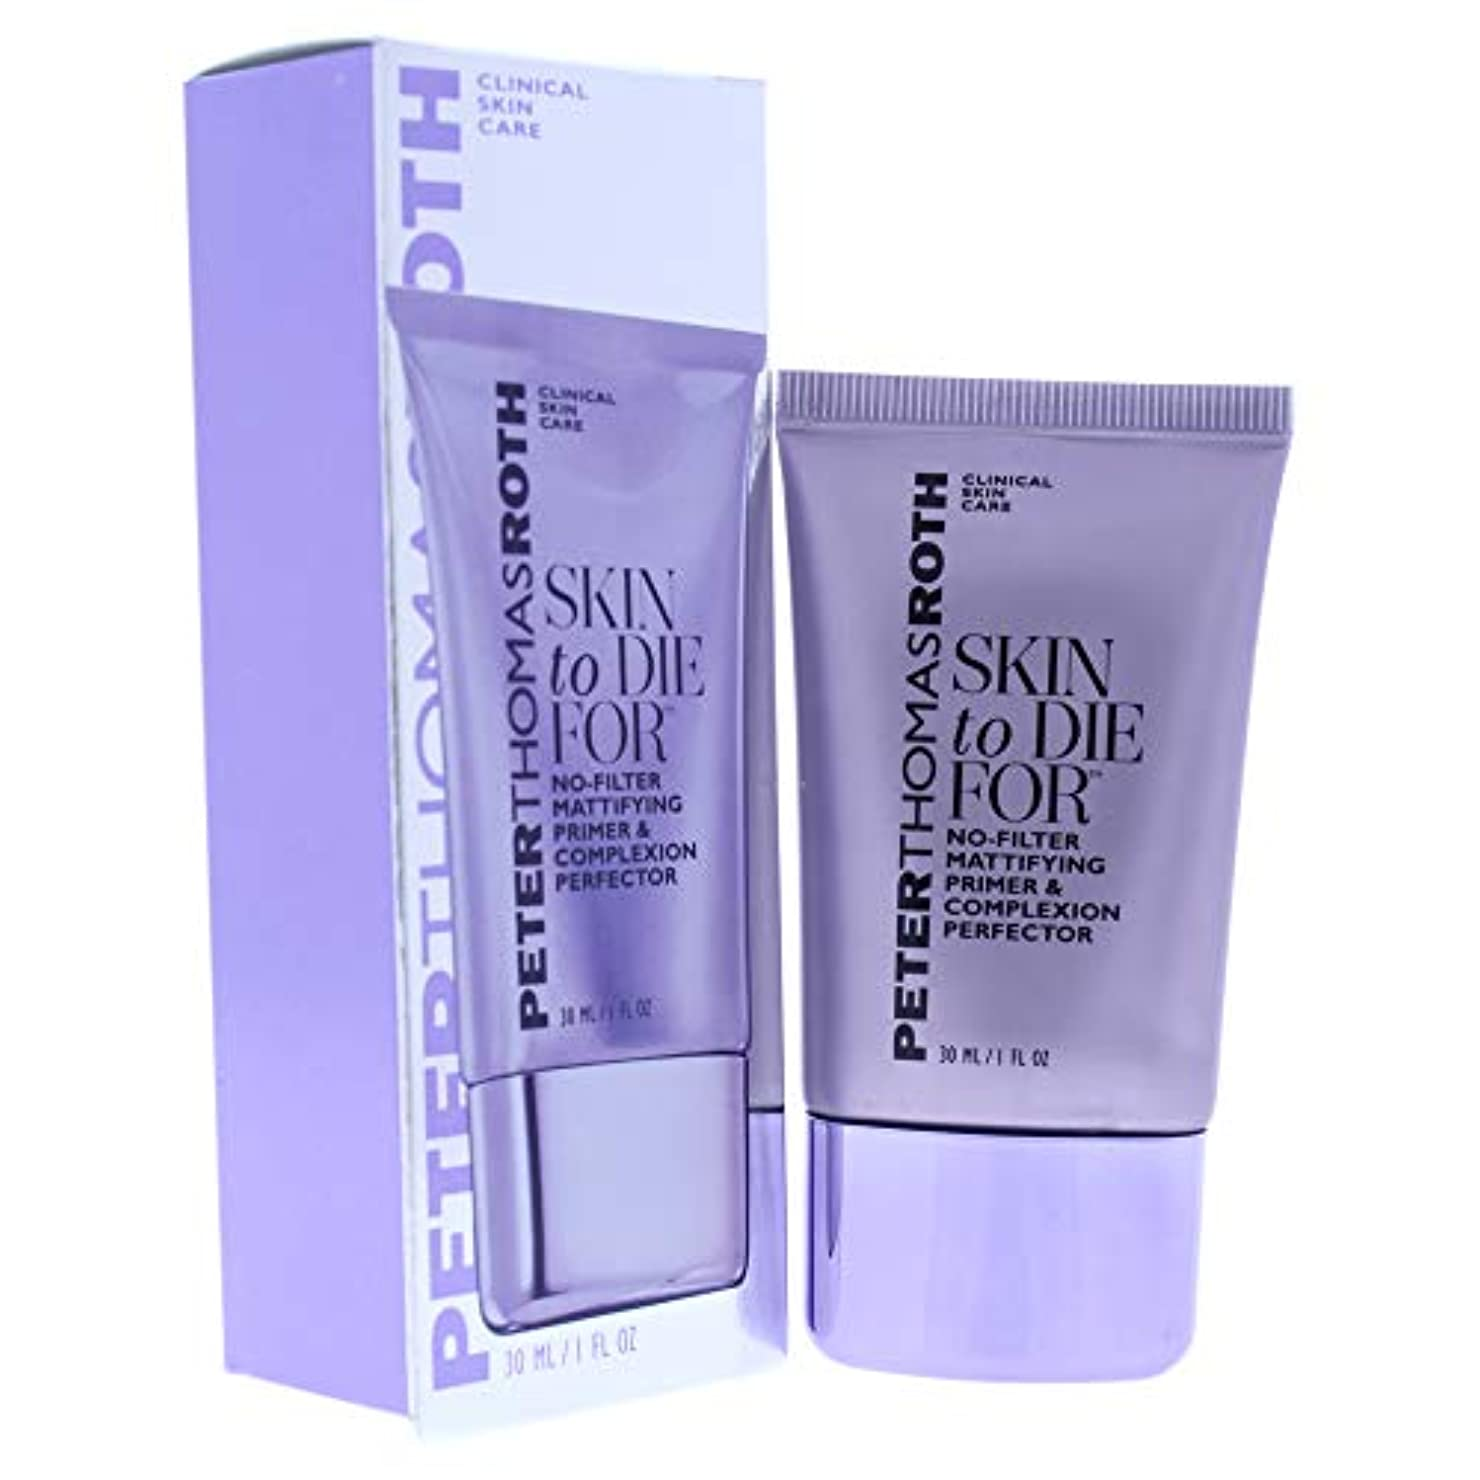 ピットダーツホーンピータートーマスロス Skin to Die For No Filter Mattifying Primer & Complexion Perfector 30ml/1oz並行輸入品